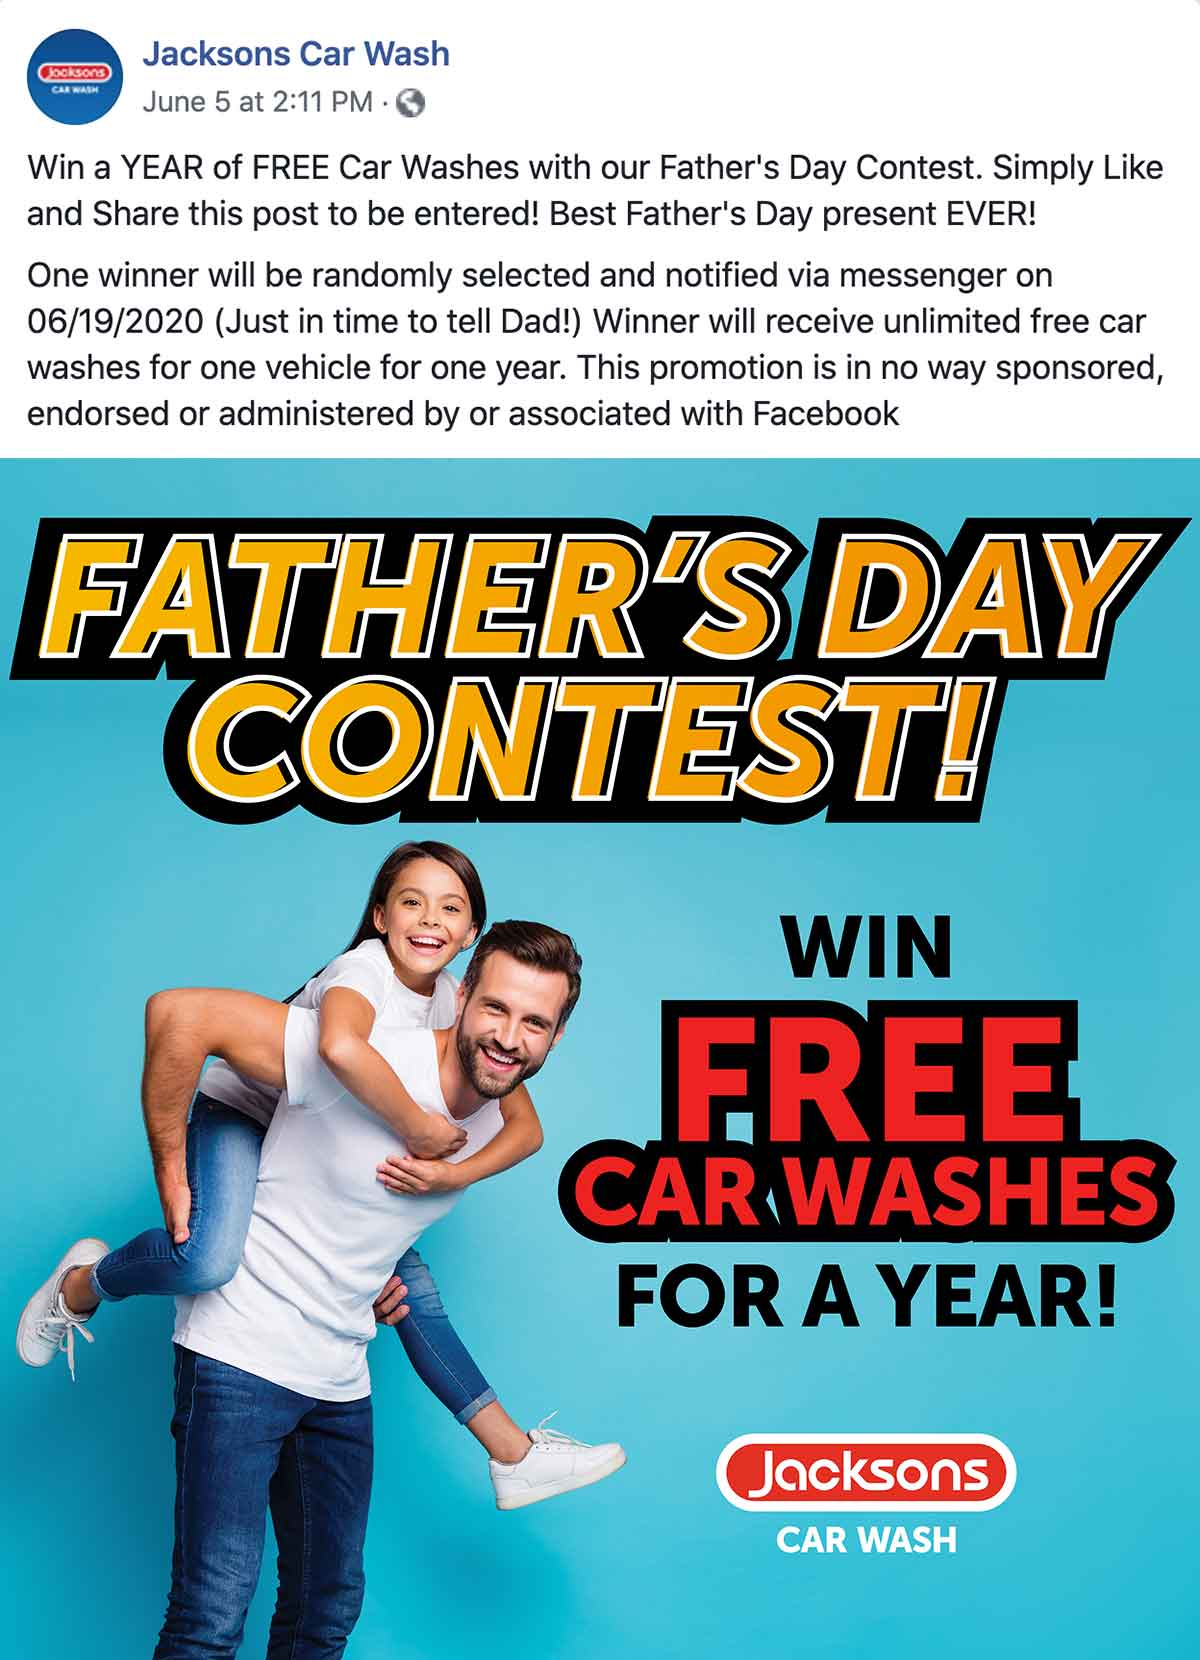 Jacksons Car Wash: Win a Year of Free Car Washes for Father's Day Facebook Post